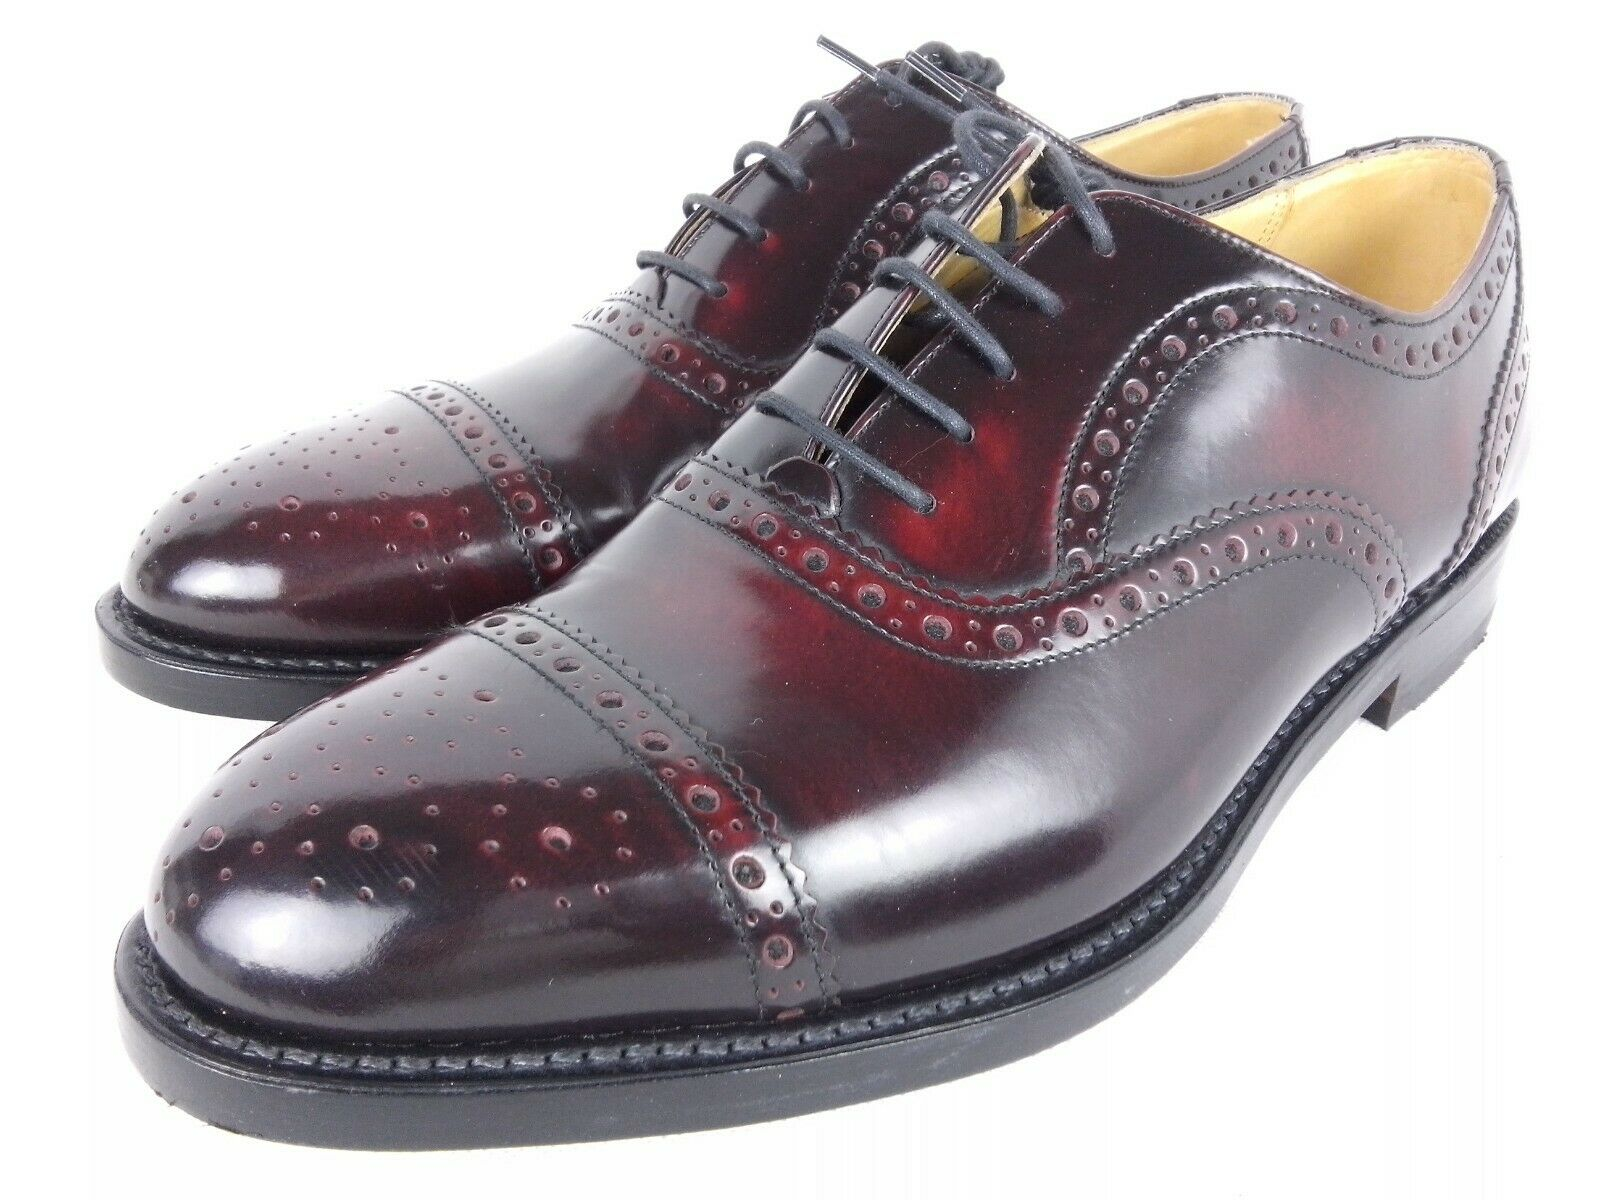 Zapatos de Cuero Burdeos Pulido K Semi Brogue Oxford Uk 9.5 como Loake welted